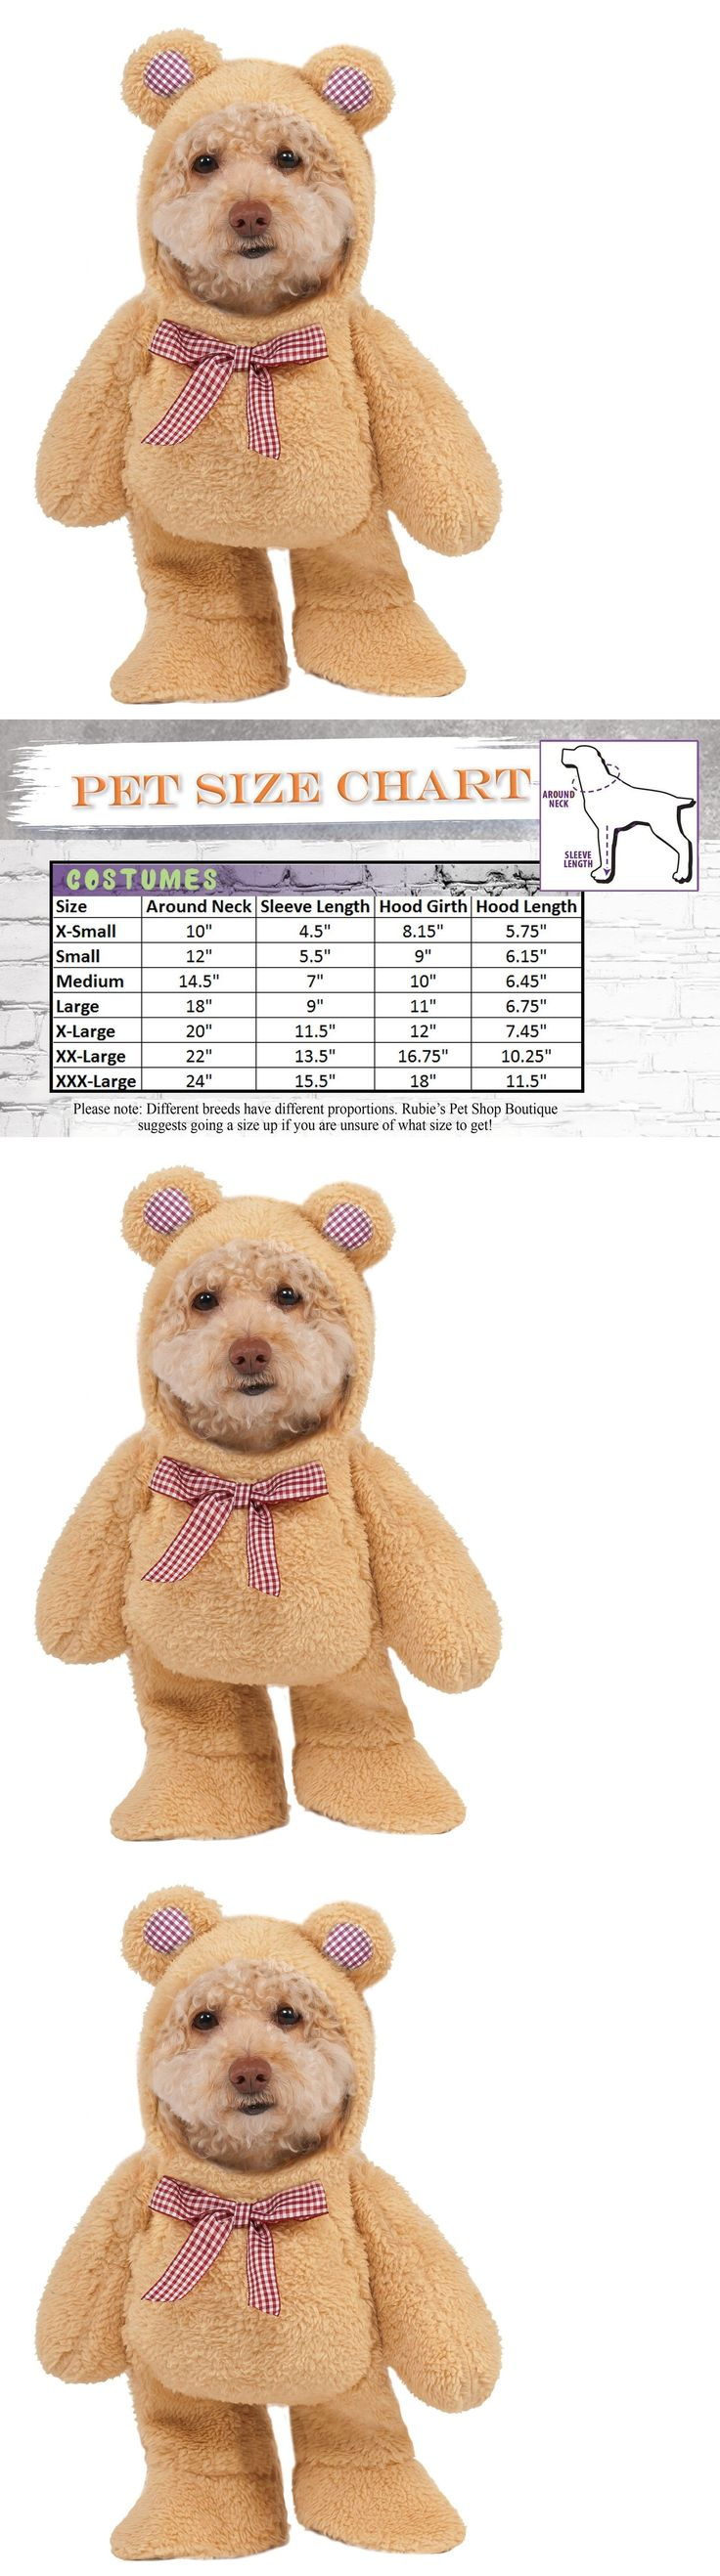 Costumes 52352: Dogs Halloween Pet Suit Costume Walking Teddy Bear Funny Cute Cats Warm Winter -> BUY IT NOW ONLY: $33 on eBay!